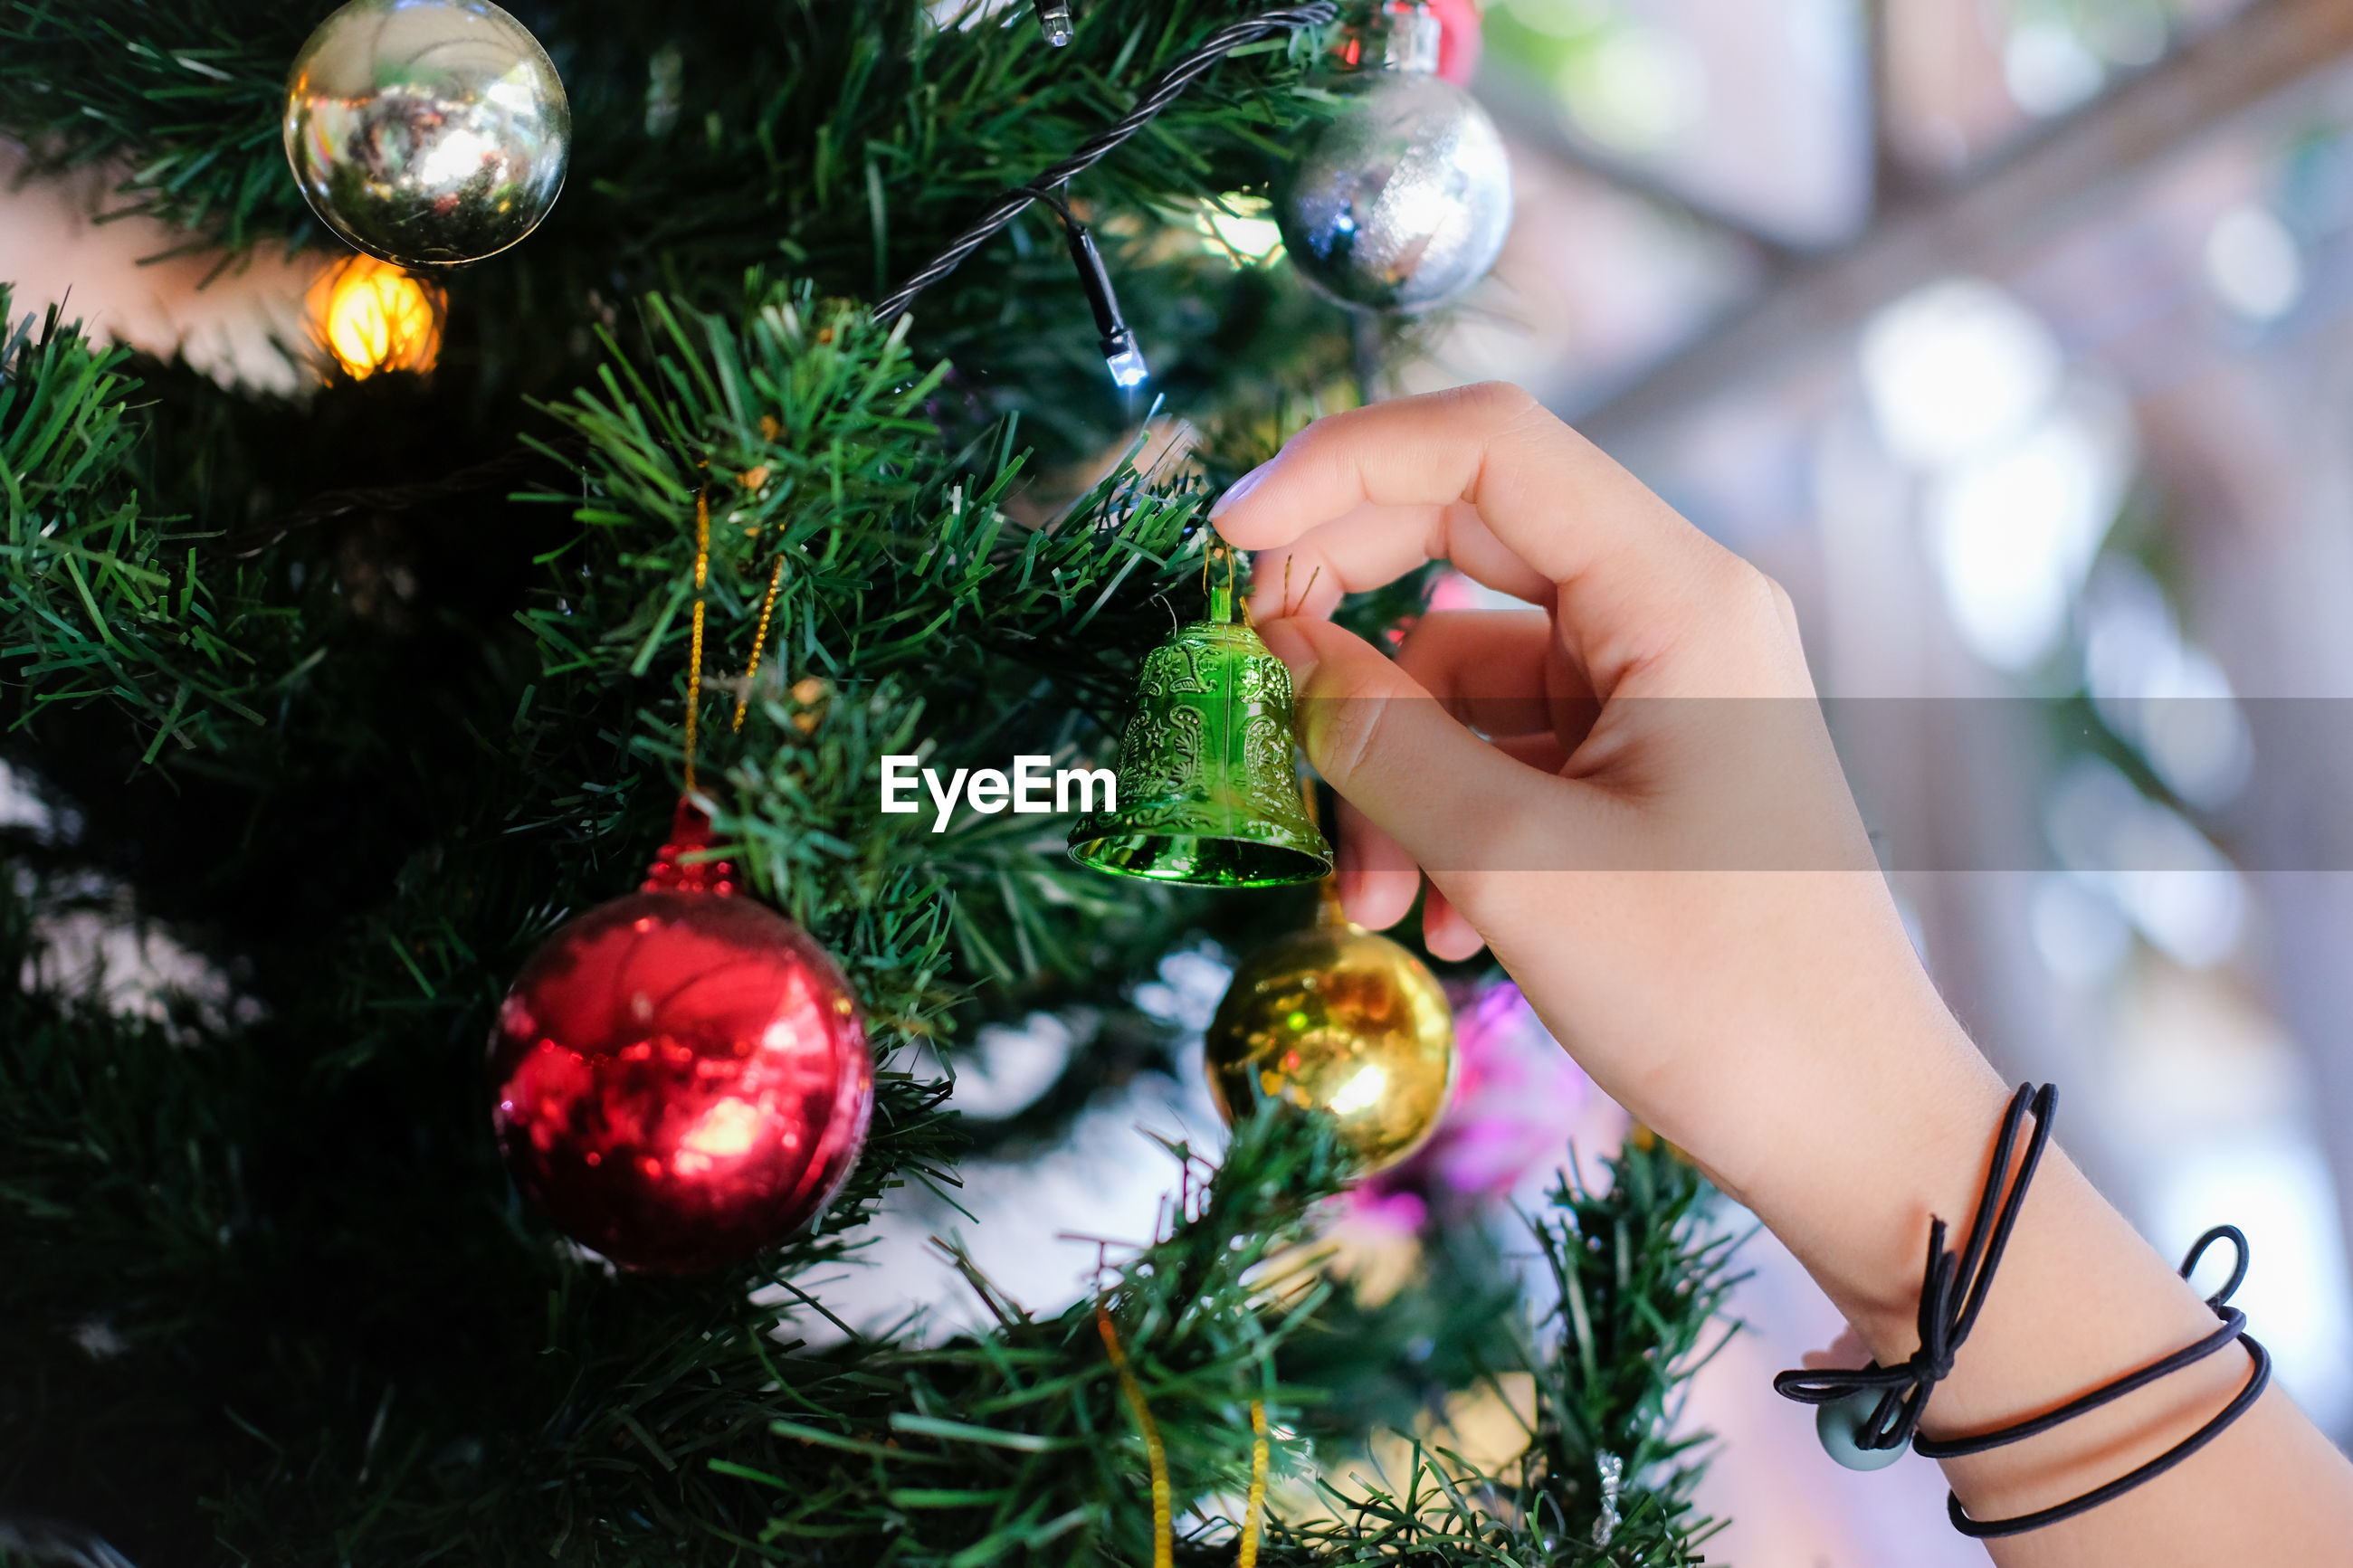 The hand of the girl decorating the christmas tree